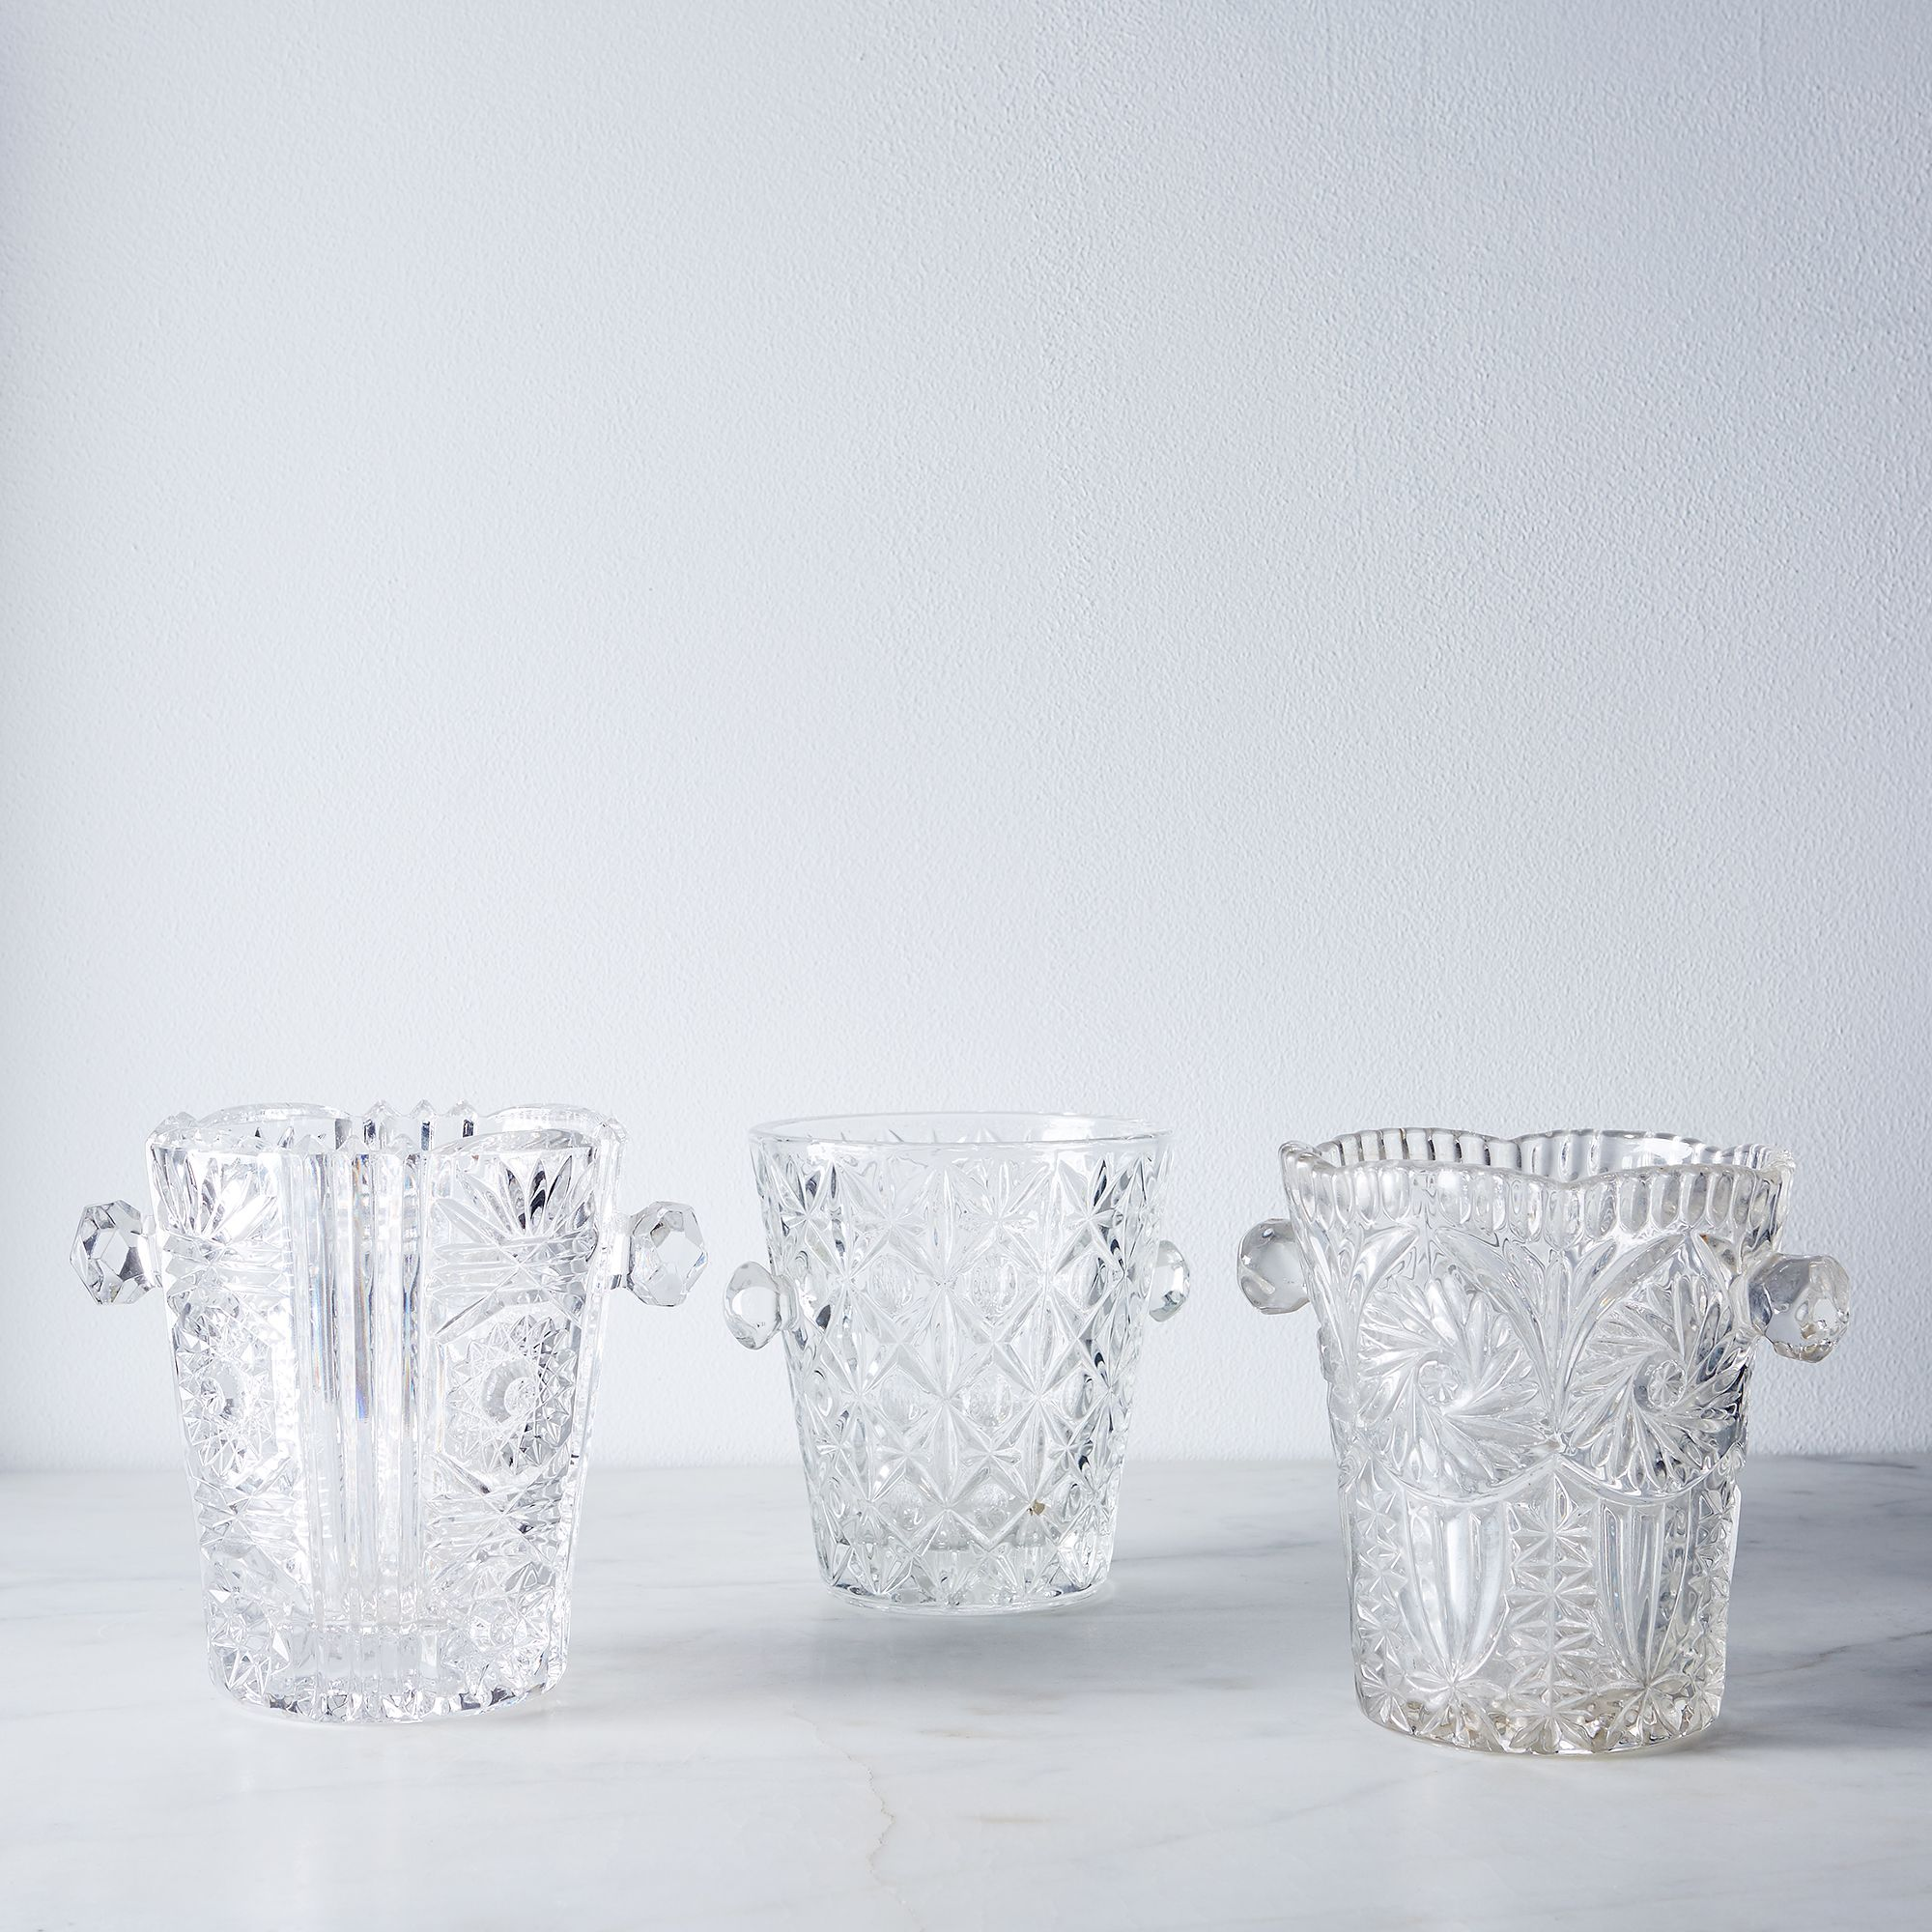 Vintage French Glass Ice Bucket $80